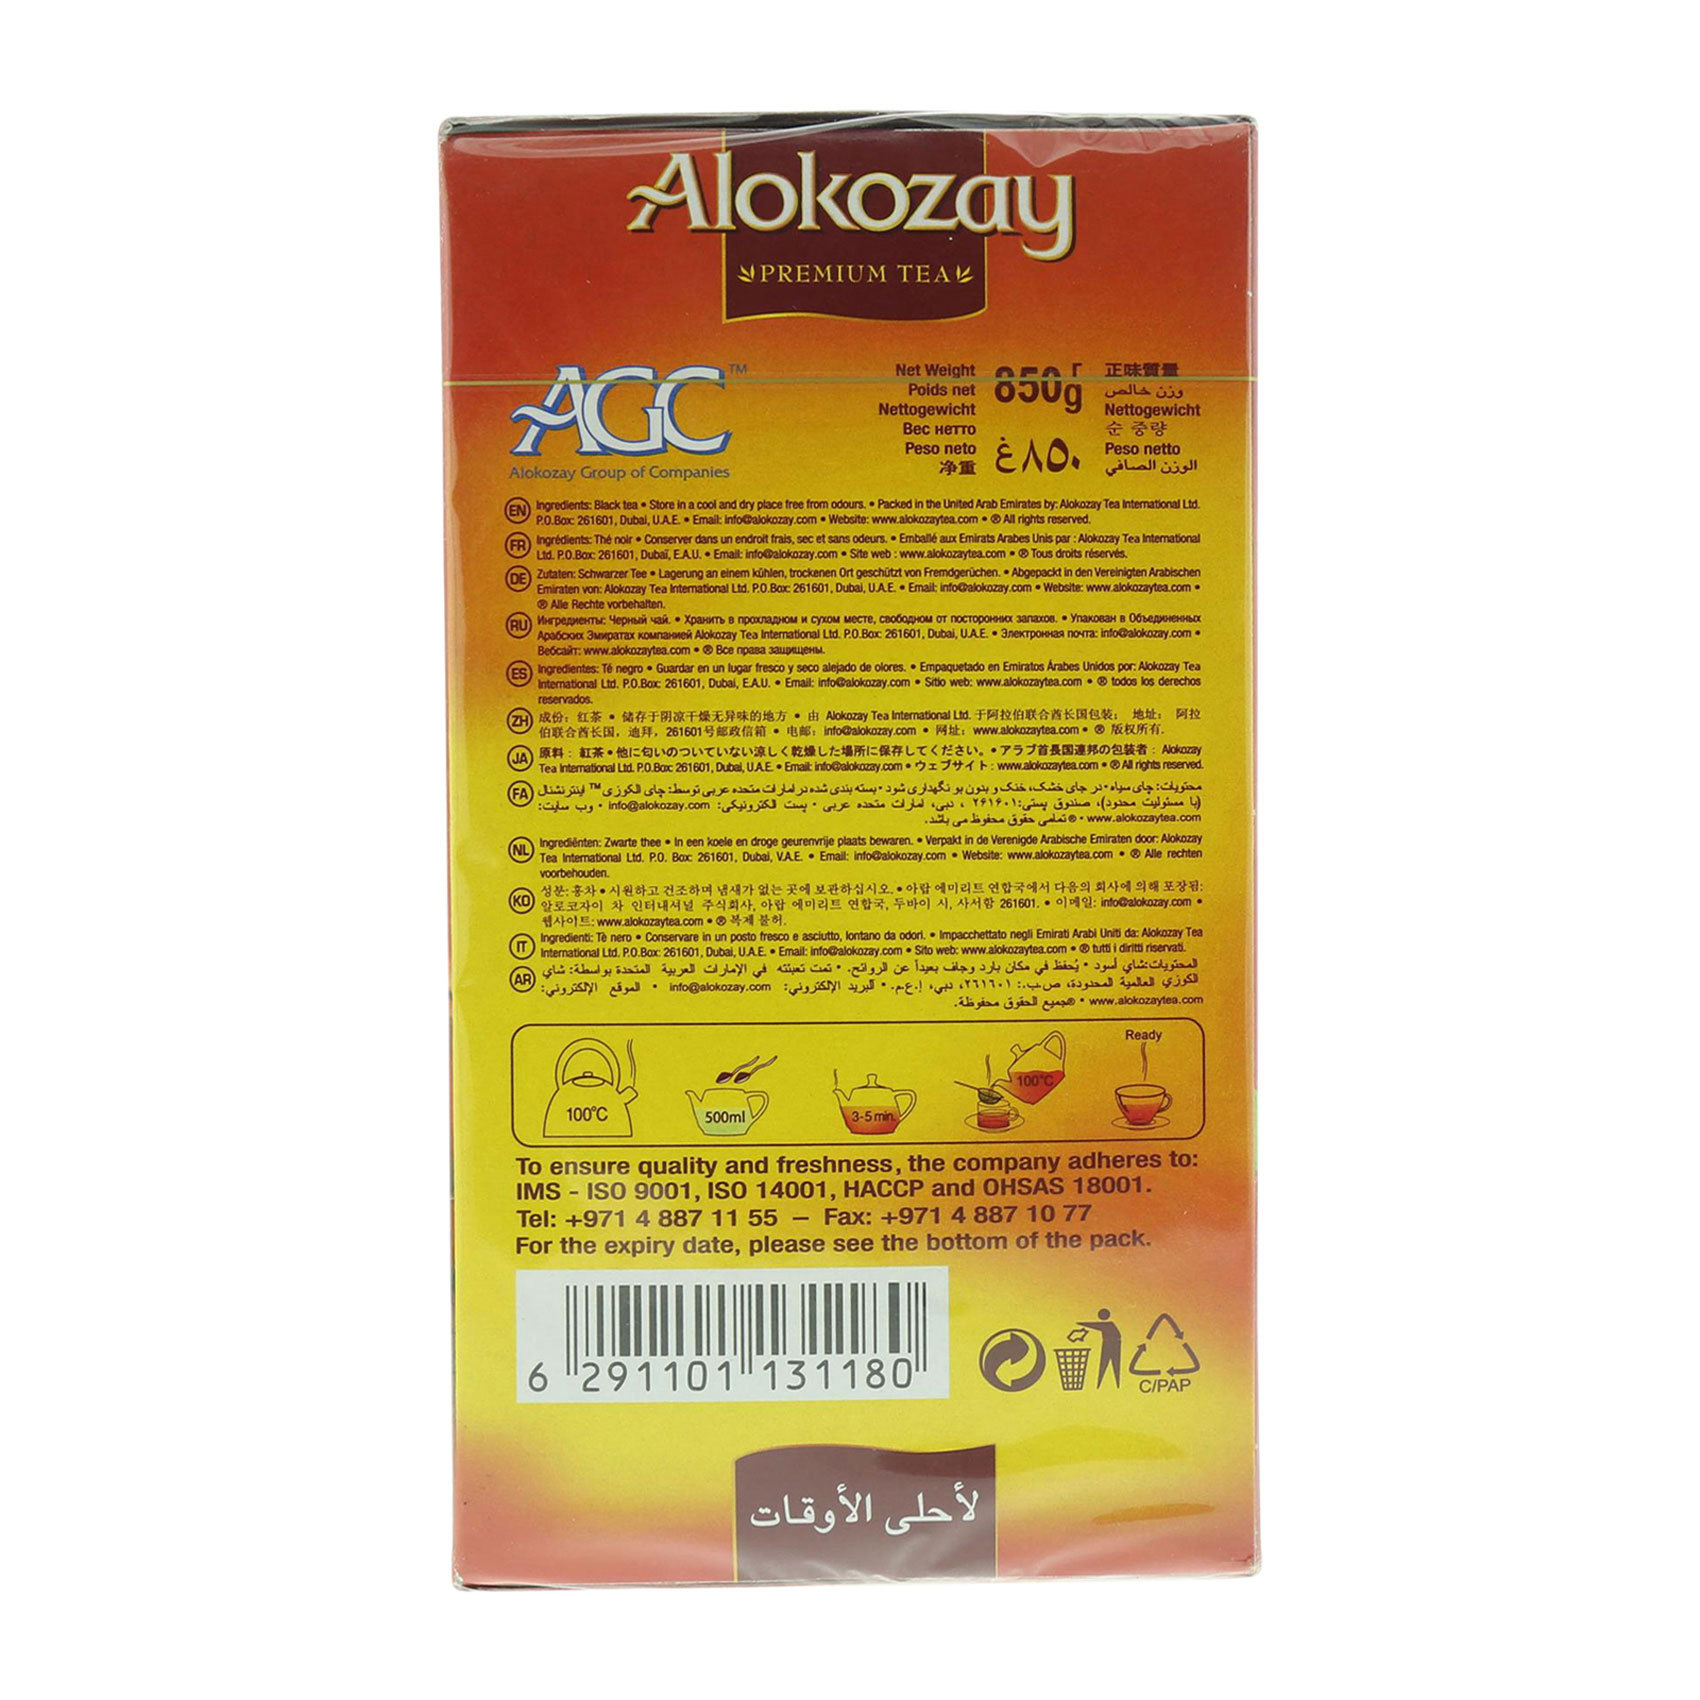 ALOKOZAY LOOSE TEA 850G